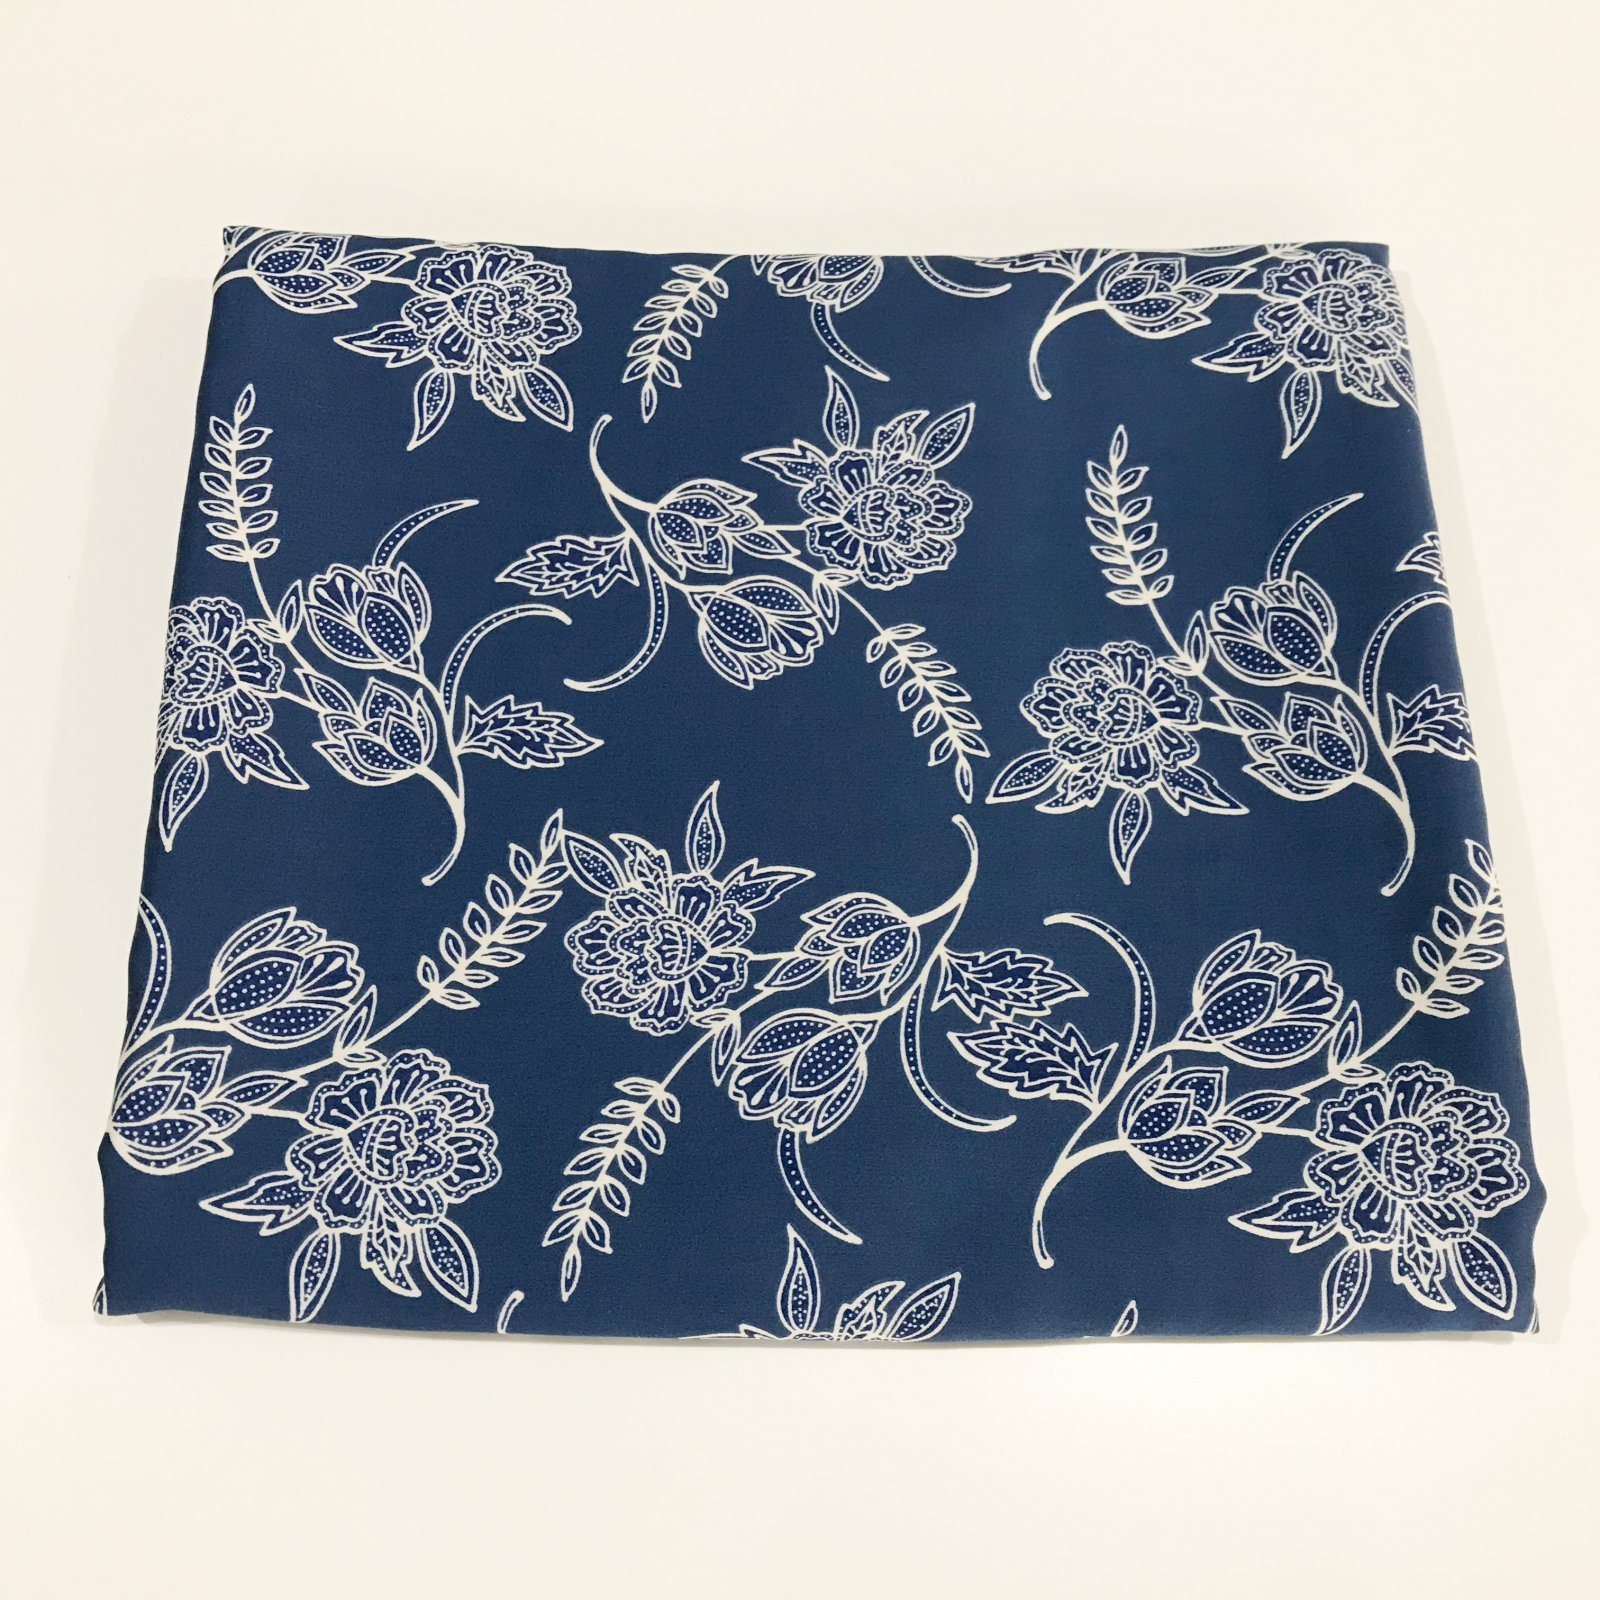 1 yard + 29 inches - Rayon - Deep French Blue Floral